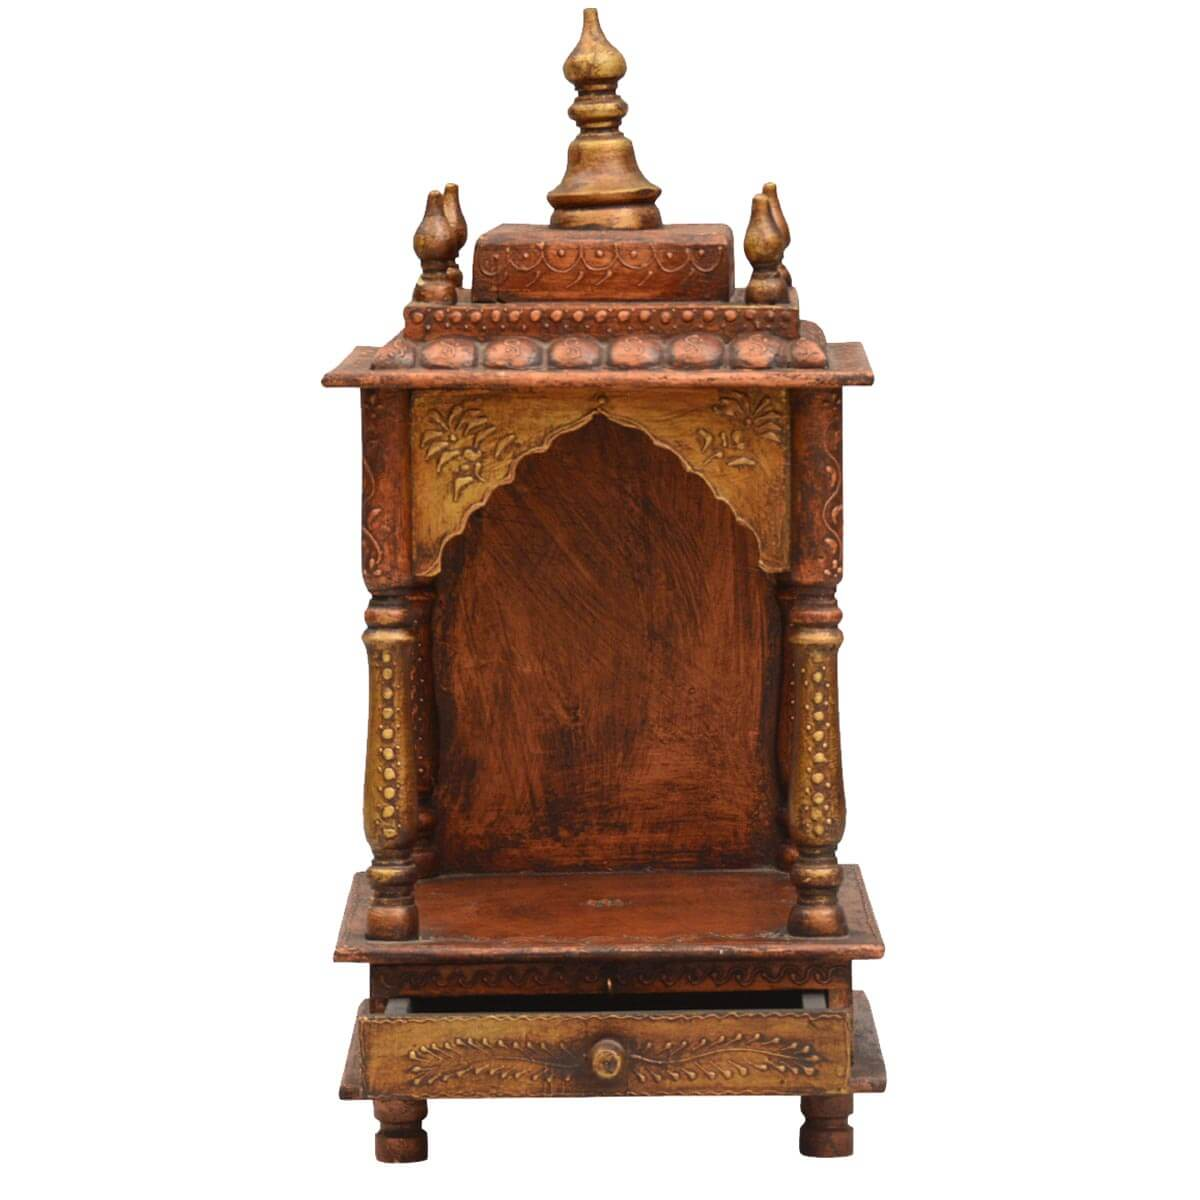 Wooden Mandir Wooden Temple Design Wooden Temple For Home Wooden Small Temple For